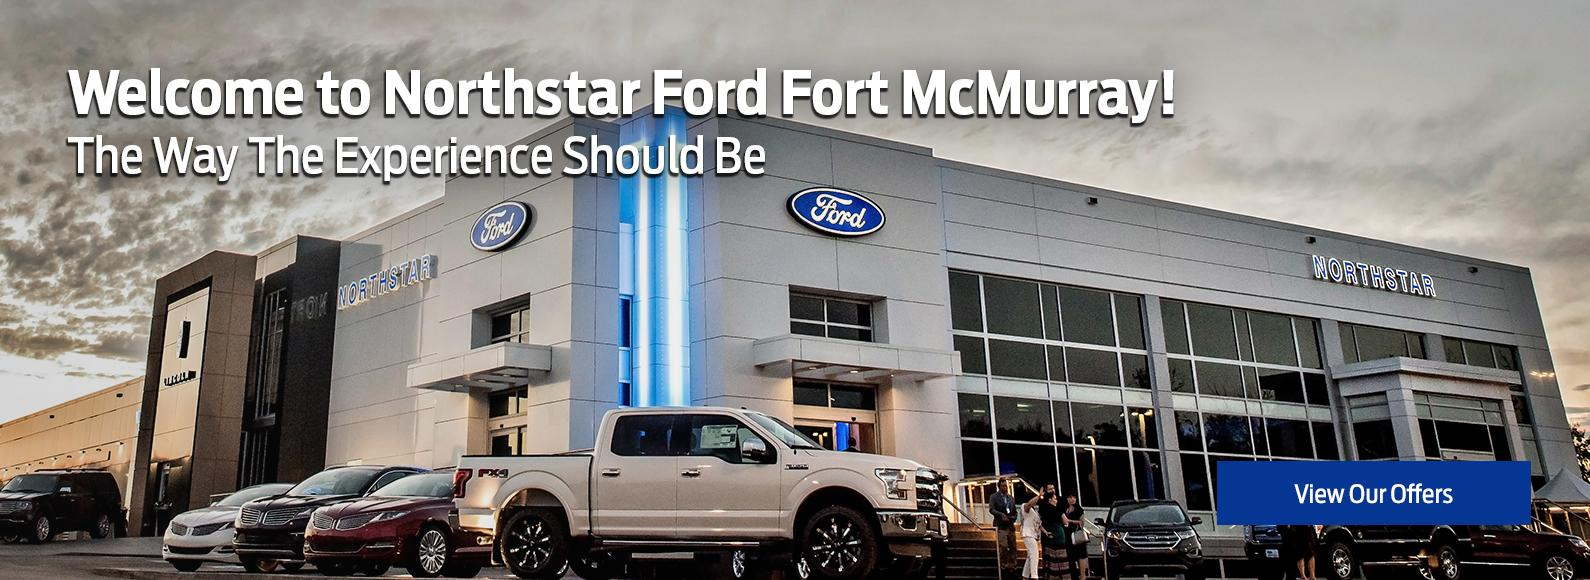 Welcome to Northstar Ford Fort McMurray!